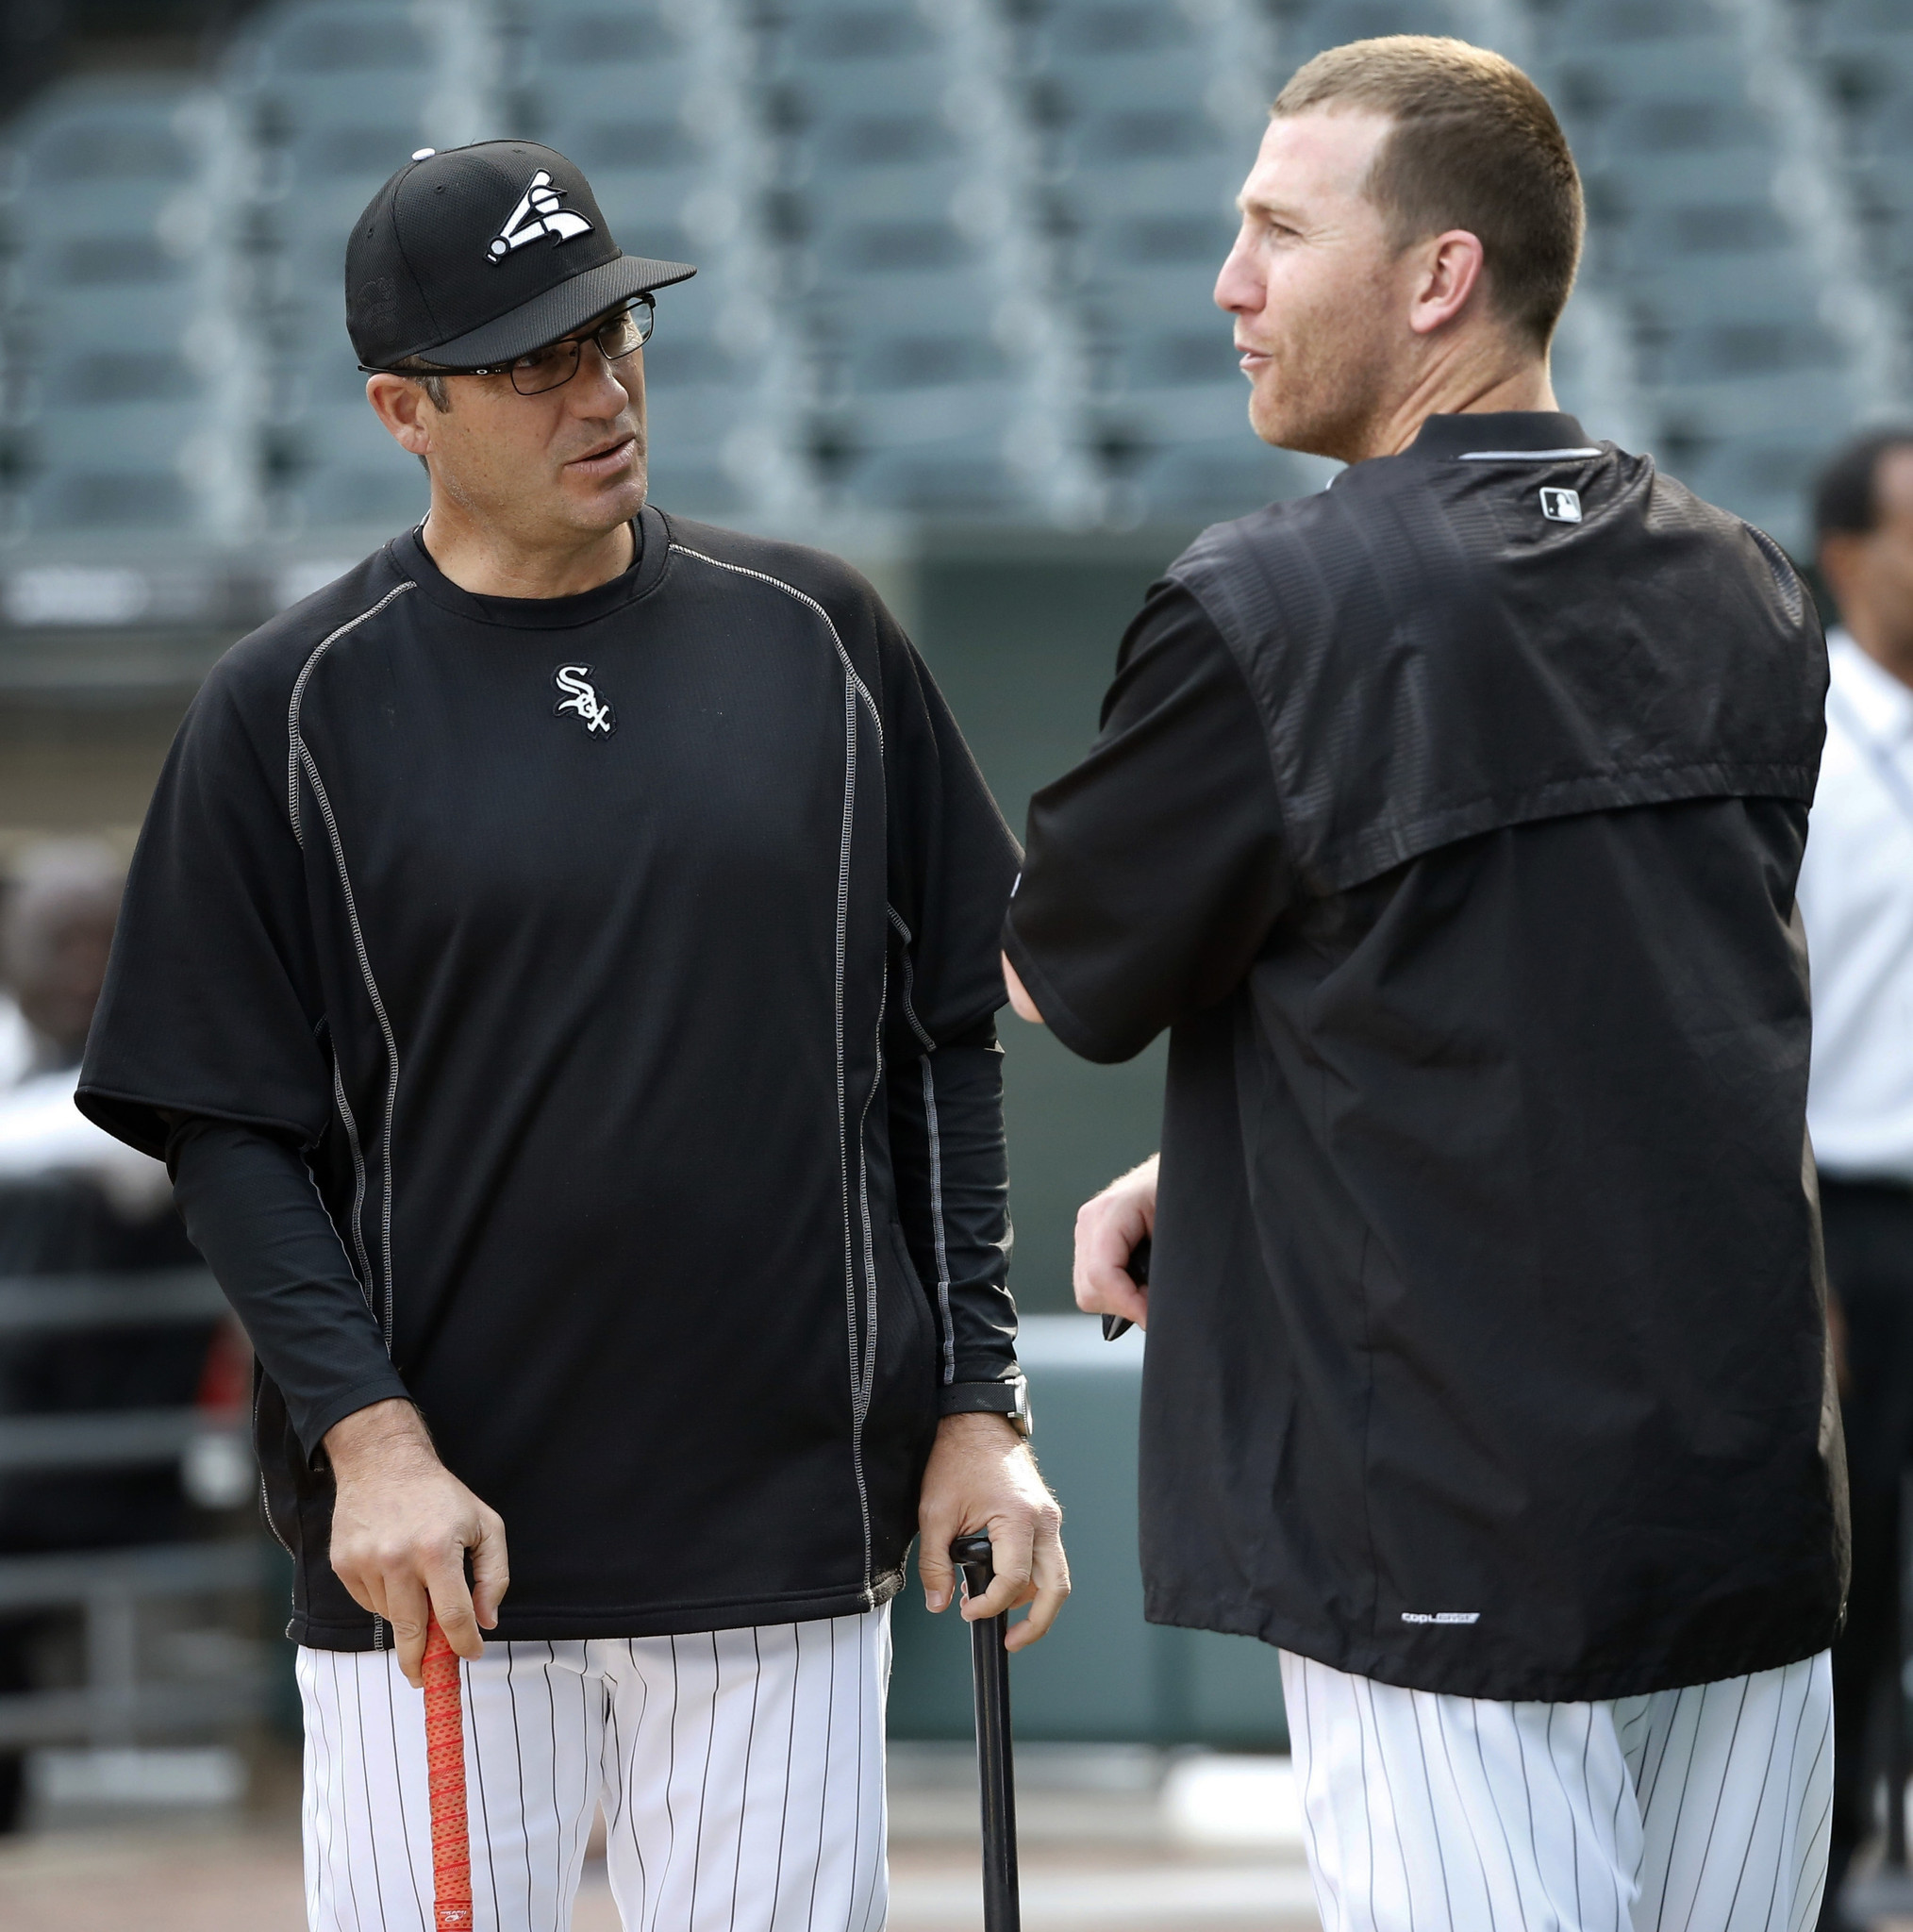 Jersey guy Todd Frazier eager to shore up White Sox